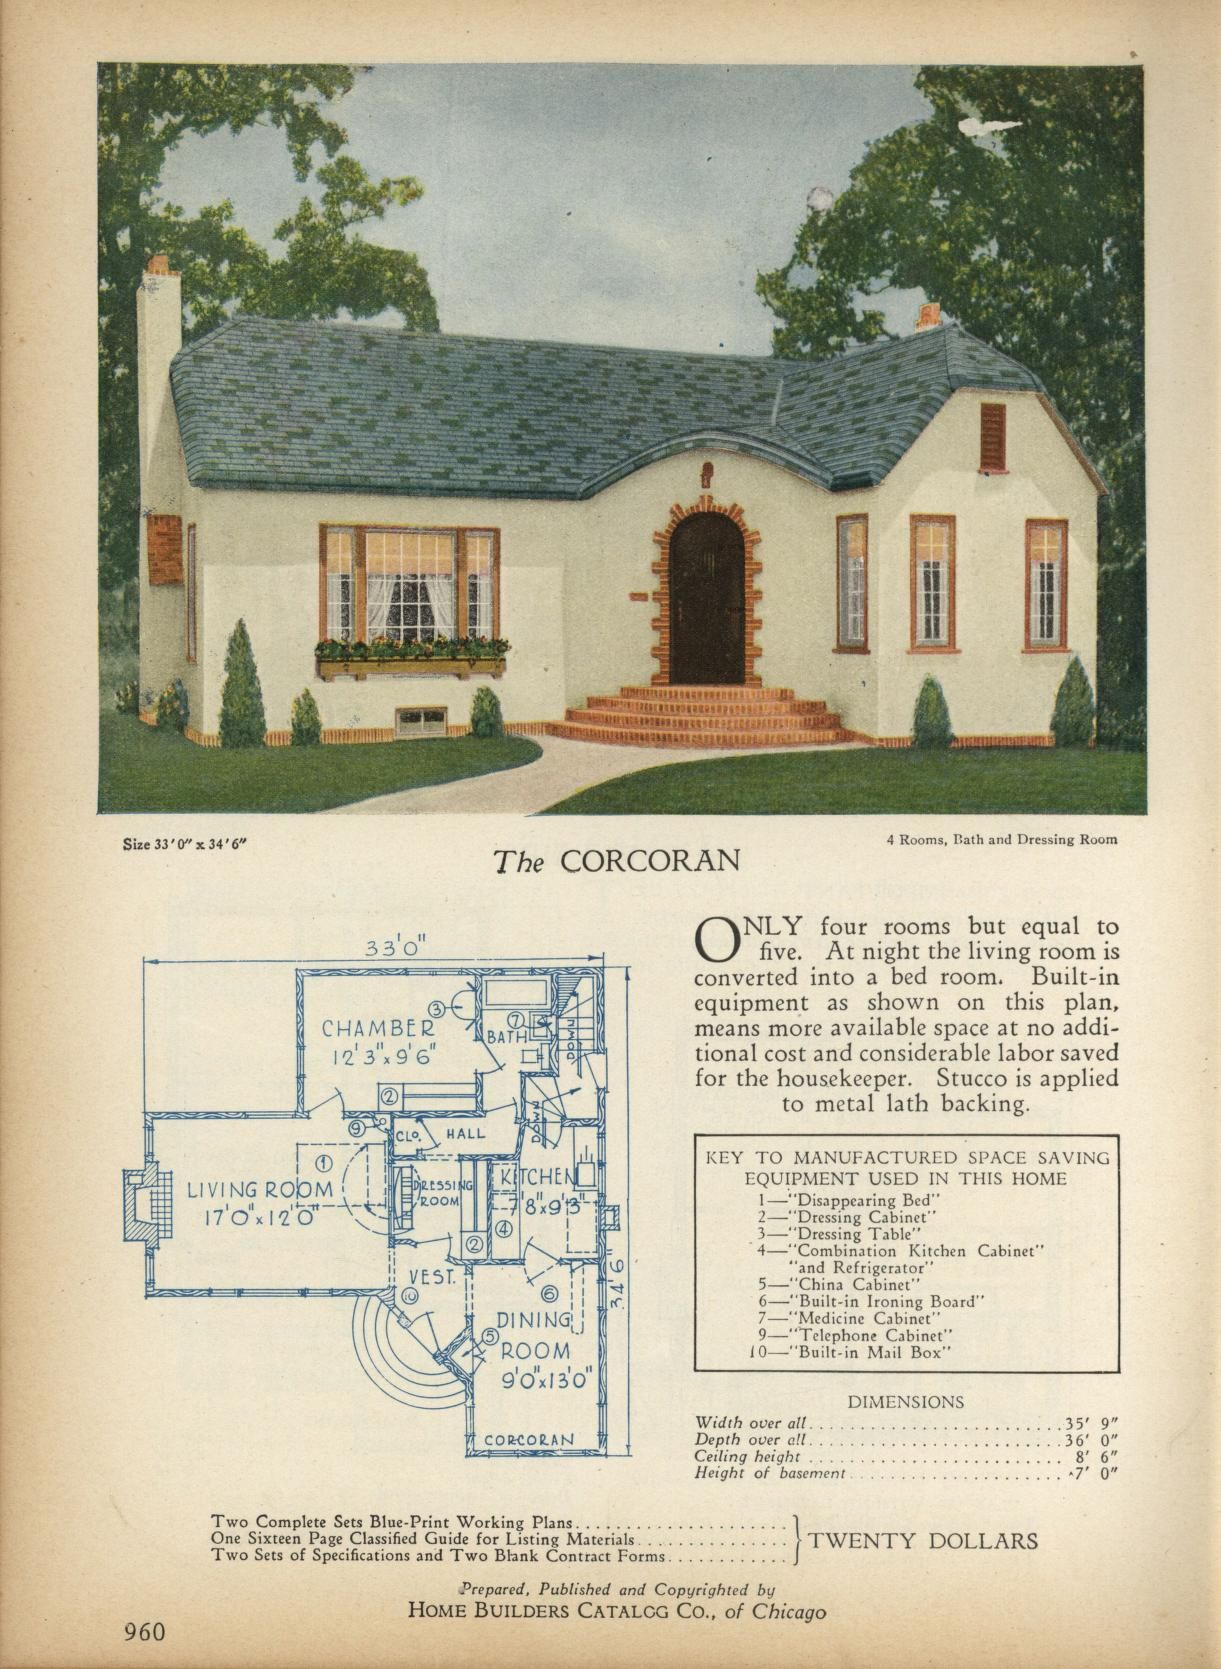 The Corcoran Home Builders Catalog Plans Of All Types Of Small Homes By Home Builders Catalog Co House Plans With Pictures House Plans Vintage House Plans